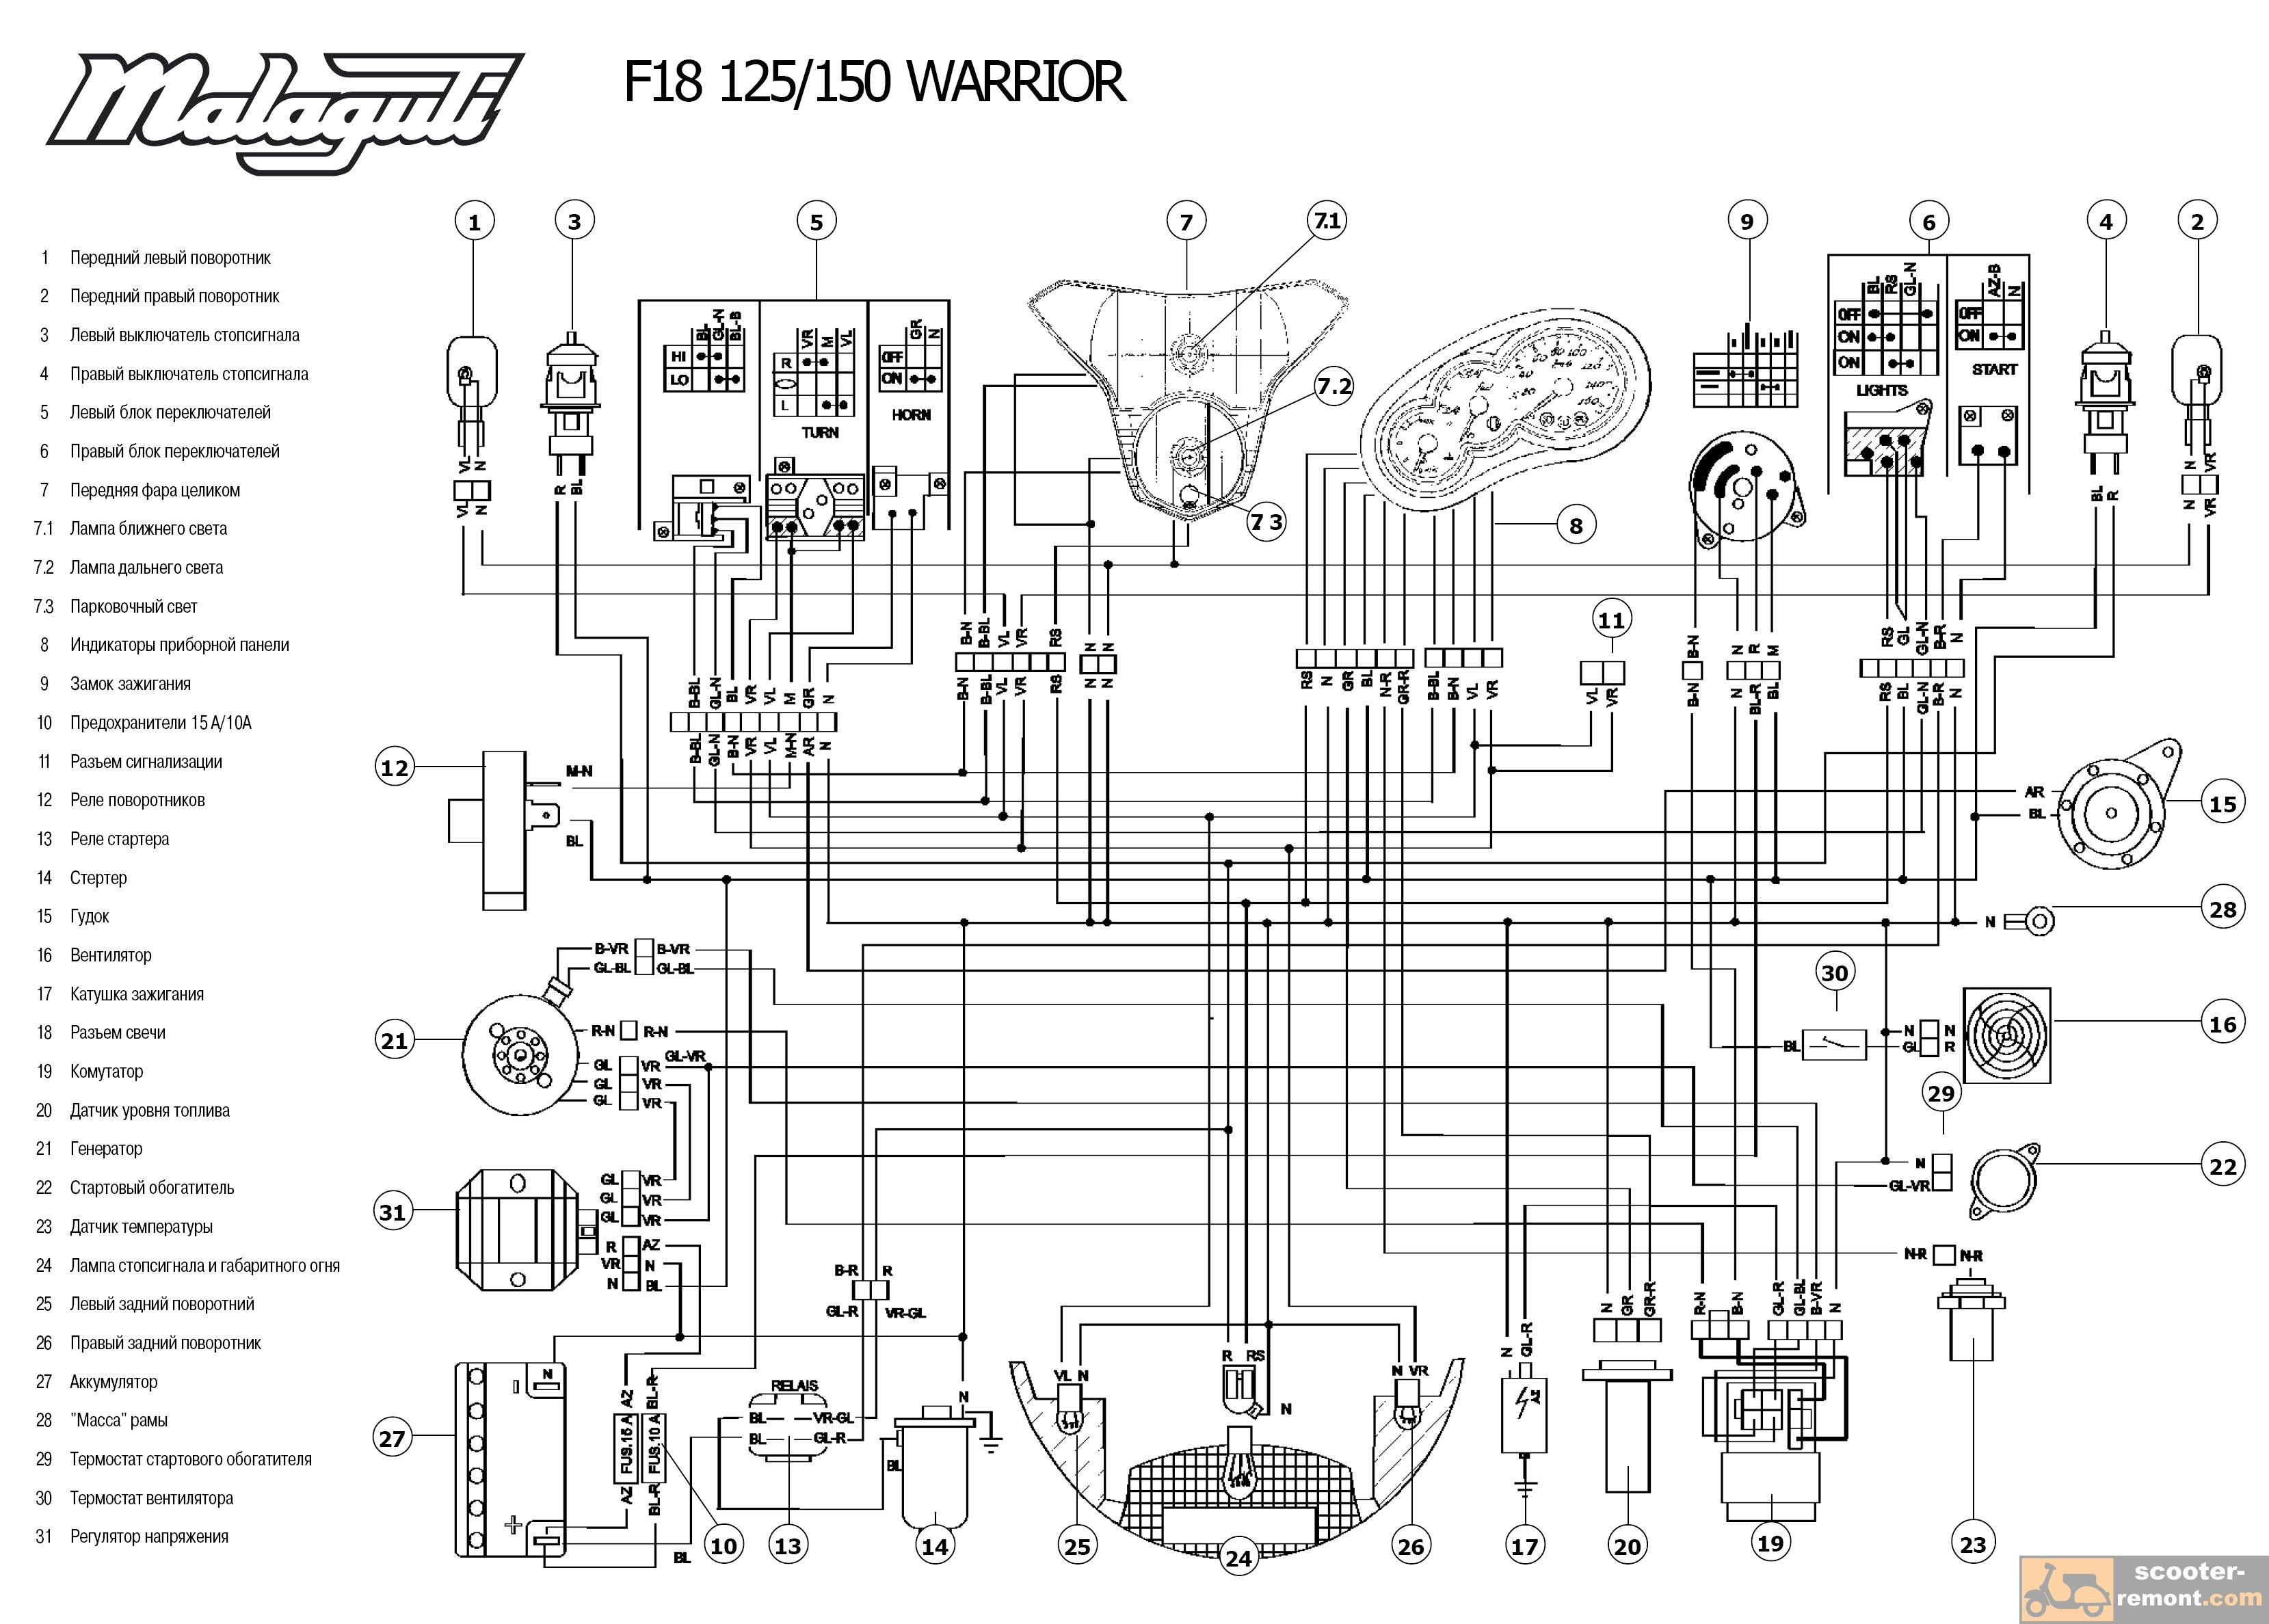 Kymco Agility 125 Wiring Diagram Idea Di Immagine Del Motociclo 2008 50 Tractor Repair With